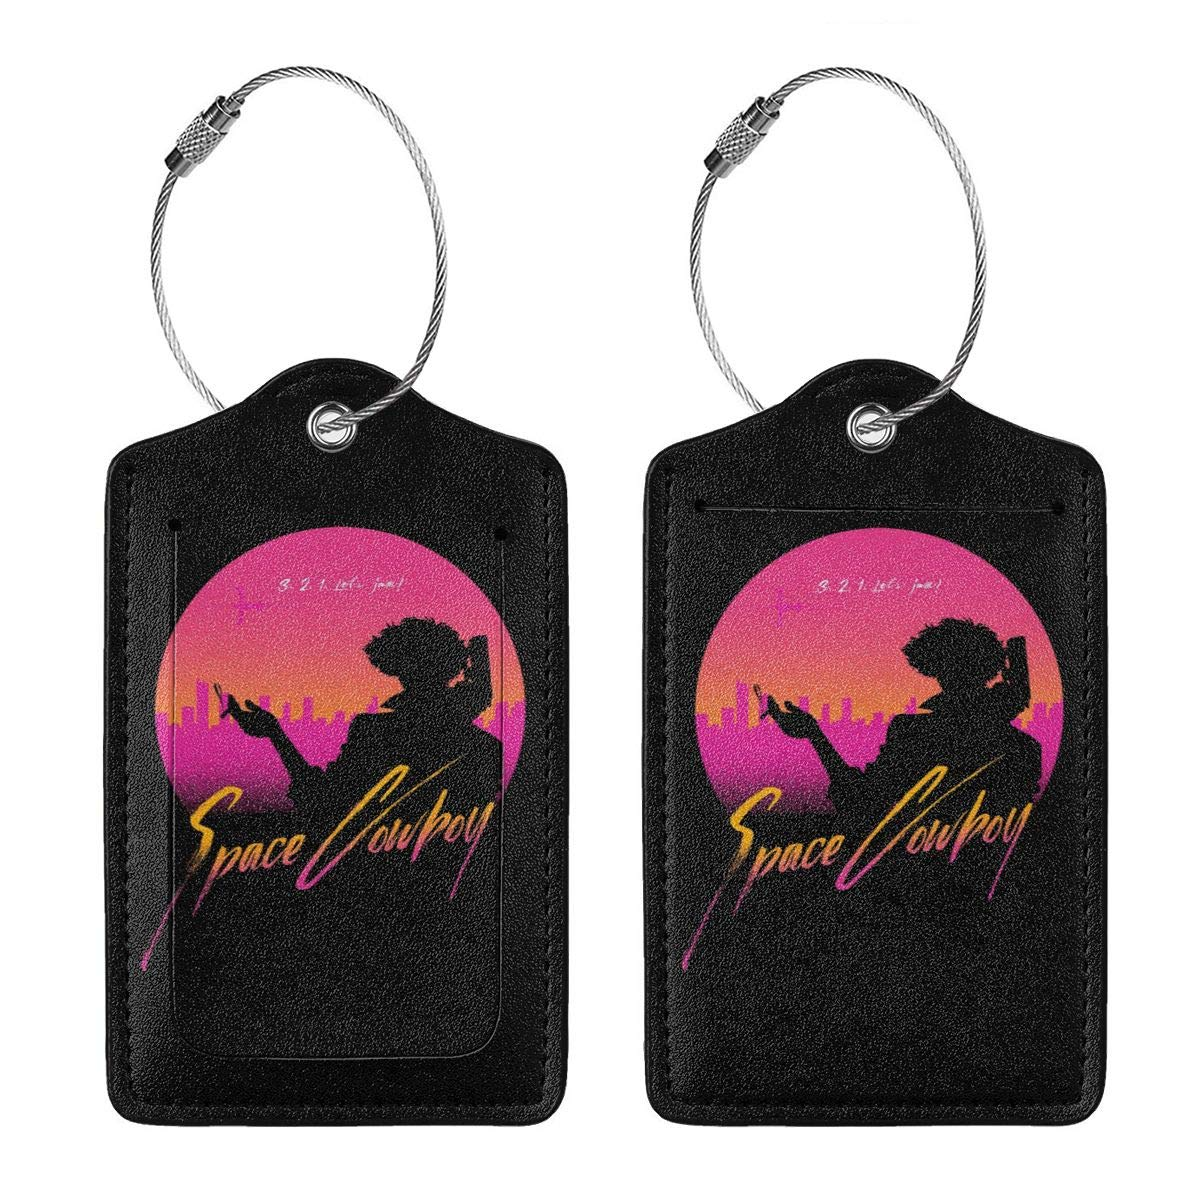 2 Cowboy Bebop 3 Leather Luggage Tag Travel ID Label For Baggage Suitcase 1